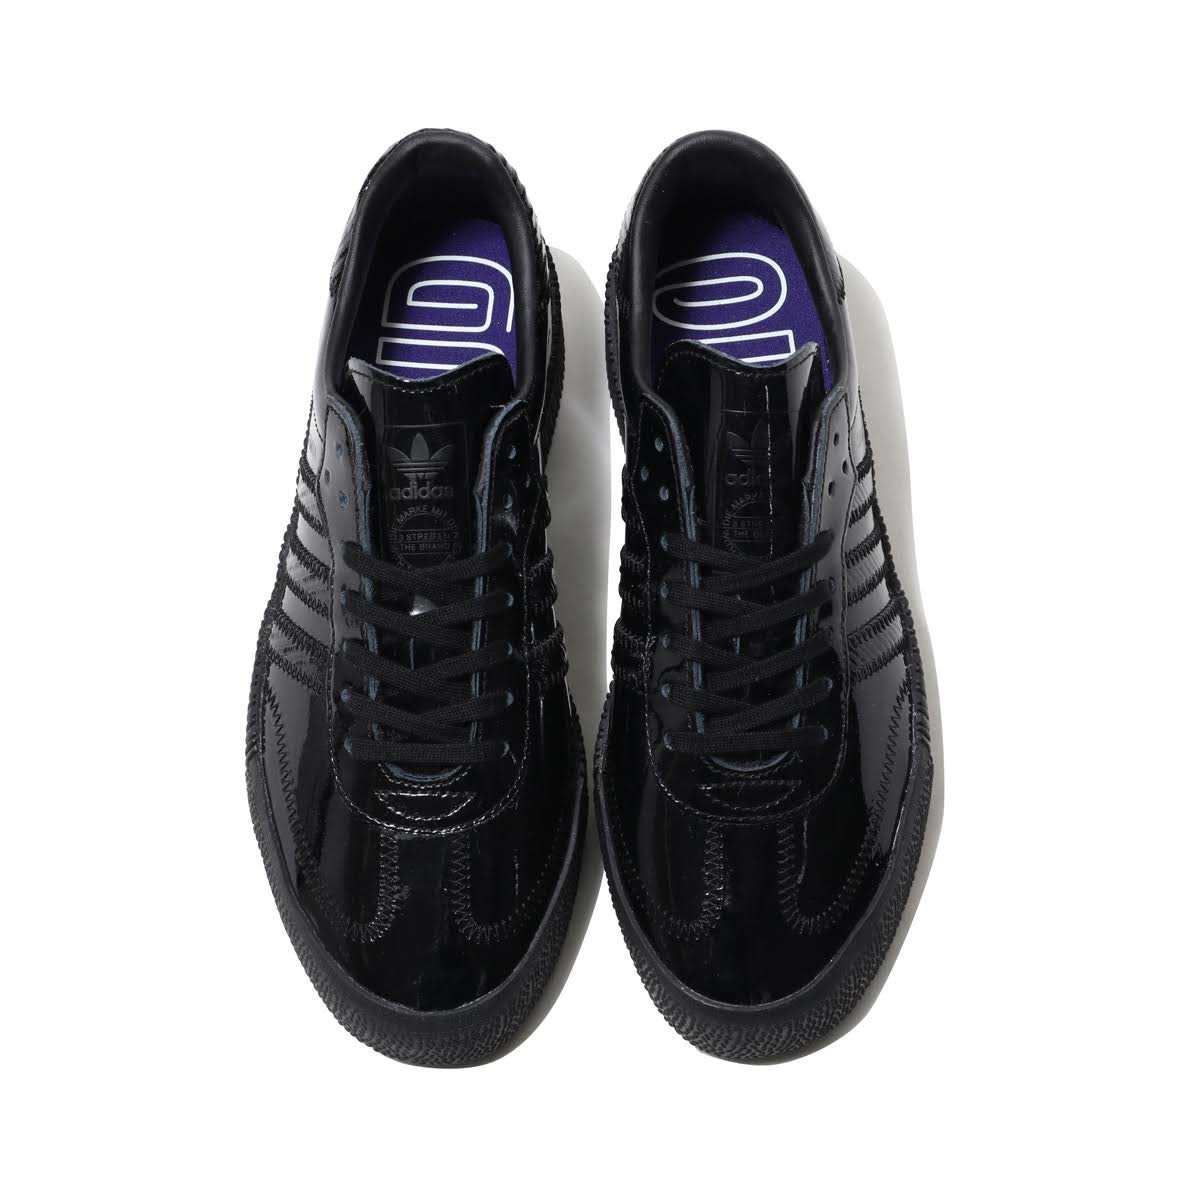 baf28356e50e adidas Originals SAMBAROSE W (CORE BLACK CORE BLACK ACTIVE PURPLE) (Adidas  originals samba Rose W)